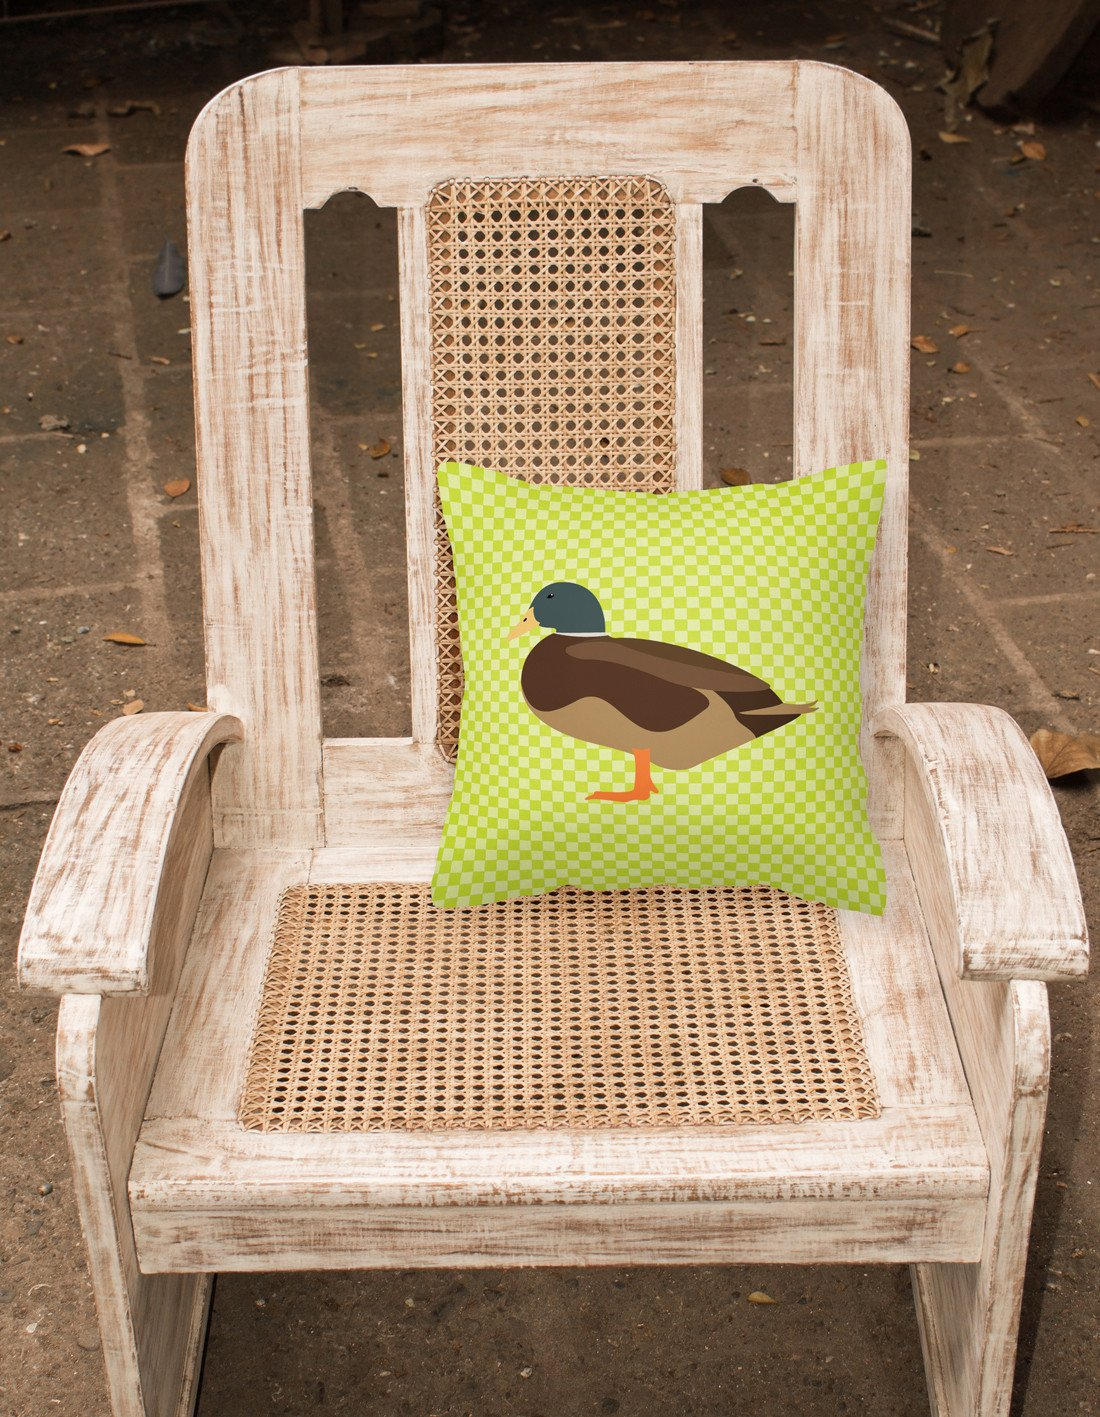 Silver Bantam Duck Green Fabric Decorative Pillow BB7693PW1818 by Caroline's Treasures